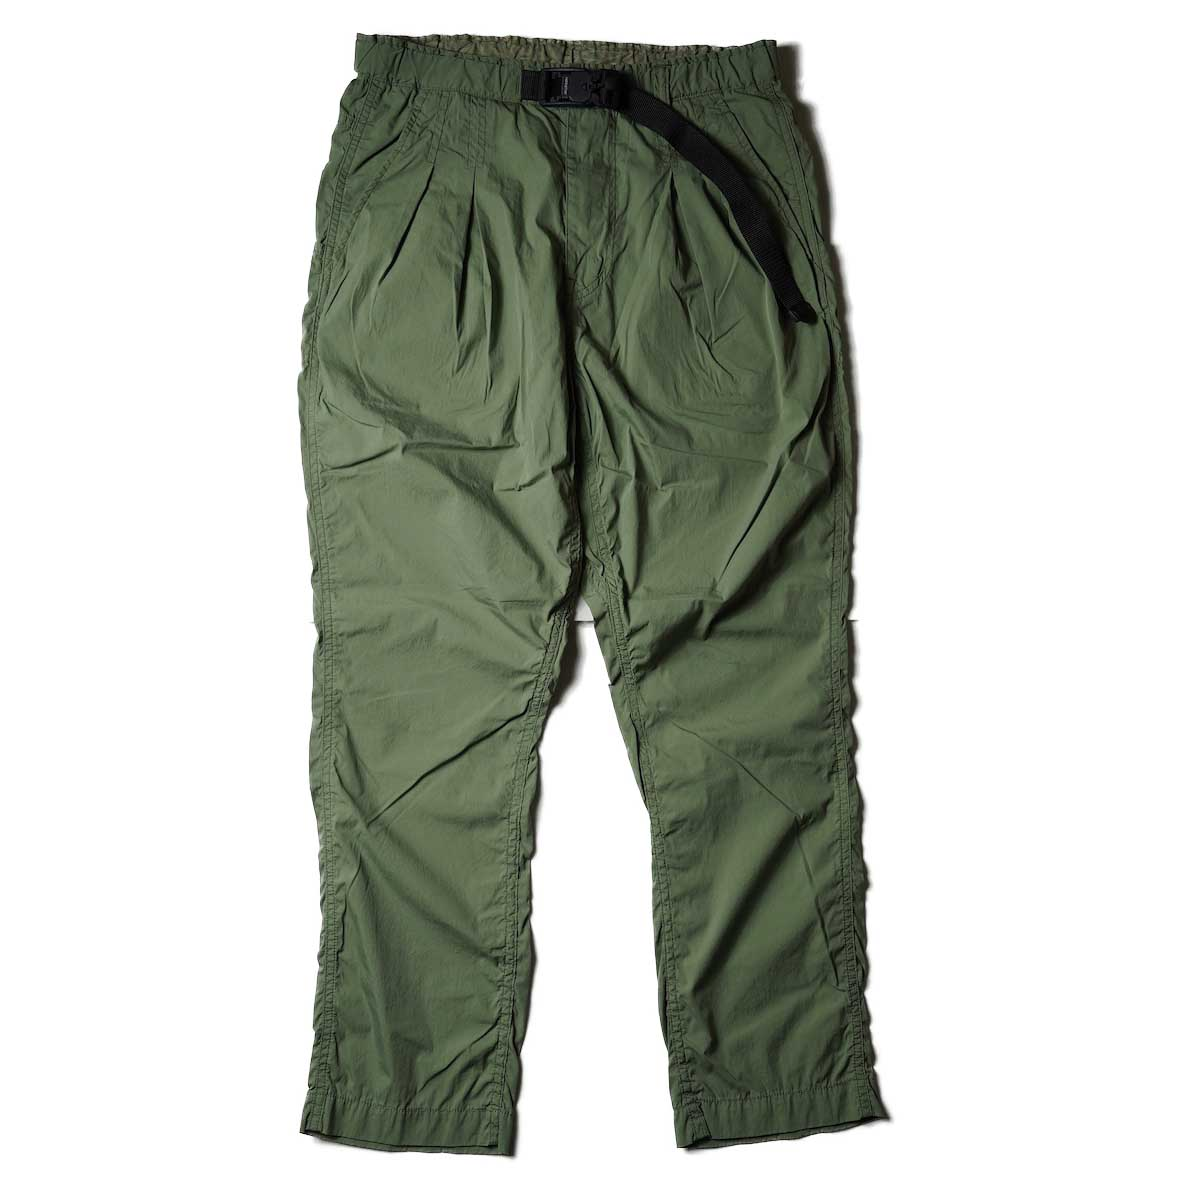 nonnative / ALPINIST EASY PANTS C/N TYPEWRITER WITH FIDLOCK® BUCKLE (Olive)